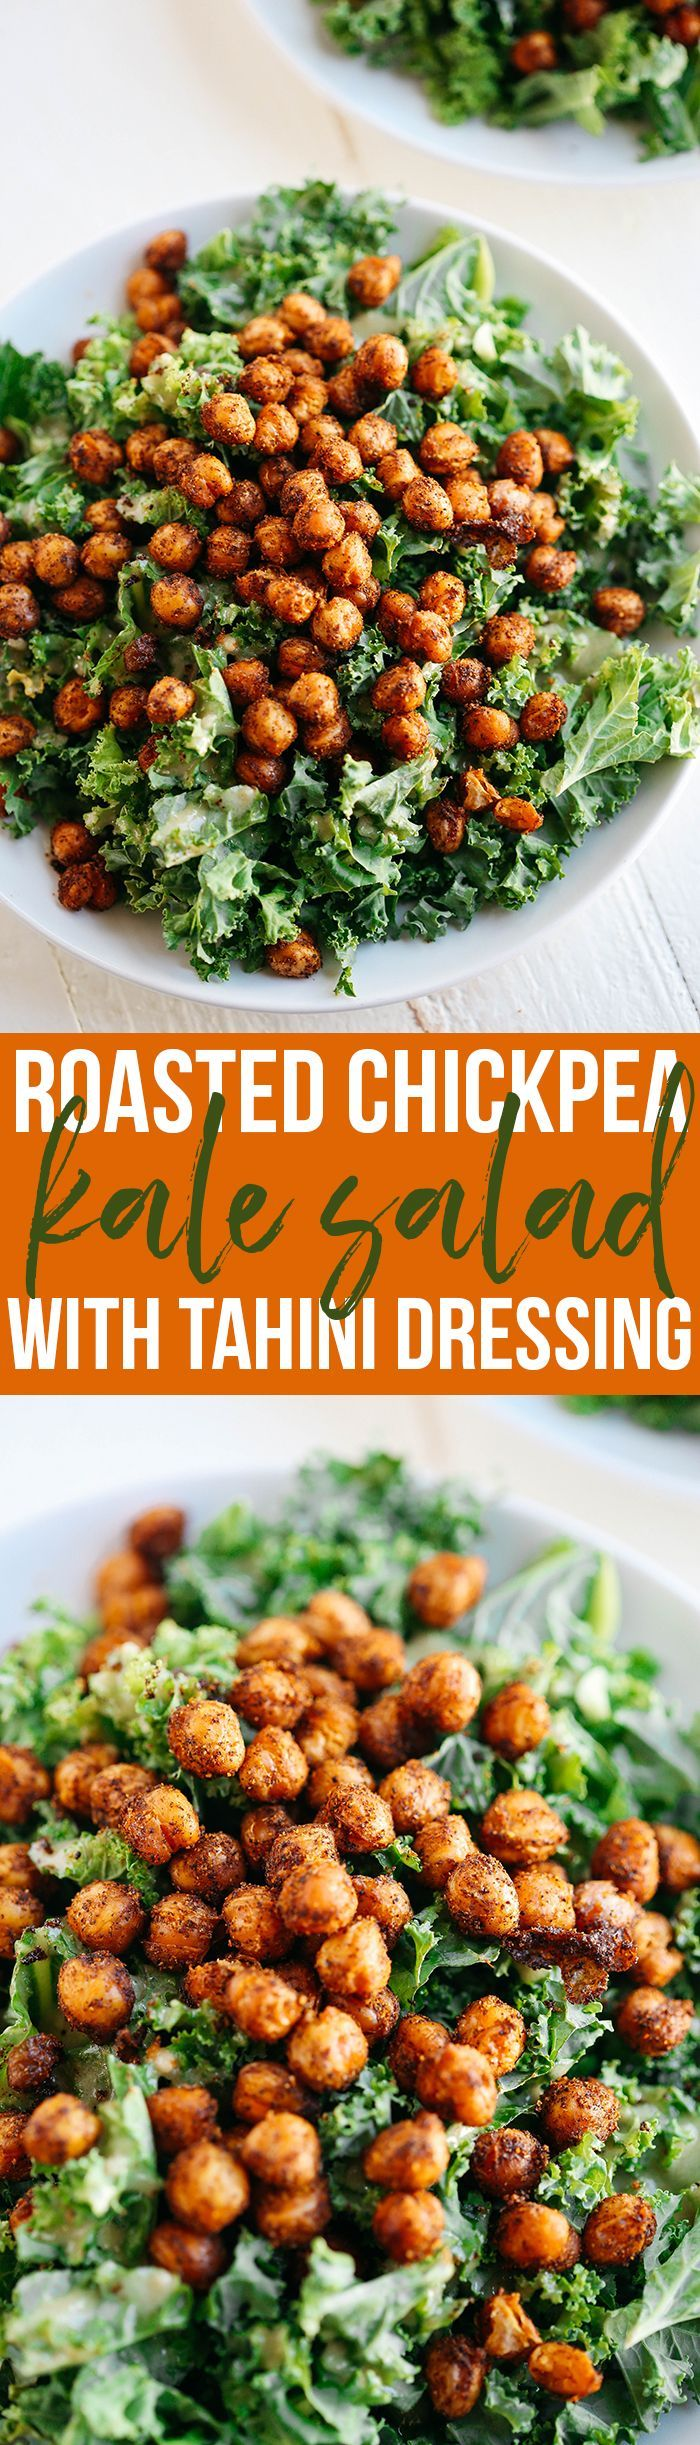 This Roasted Chickpea and Kale Salad with delicious creamy tahini dressing is hearty, healthy and full of so much flavor.